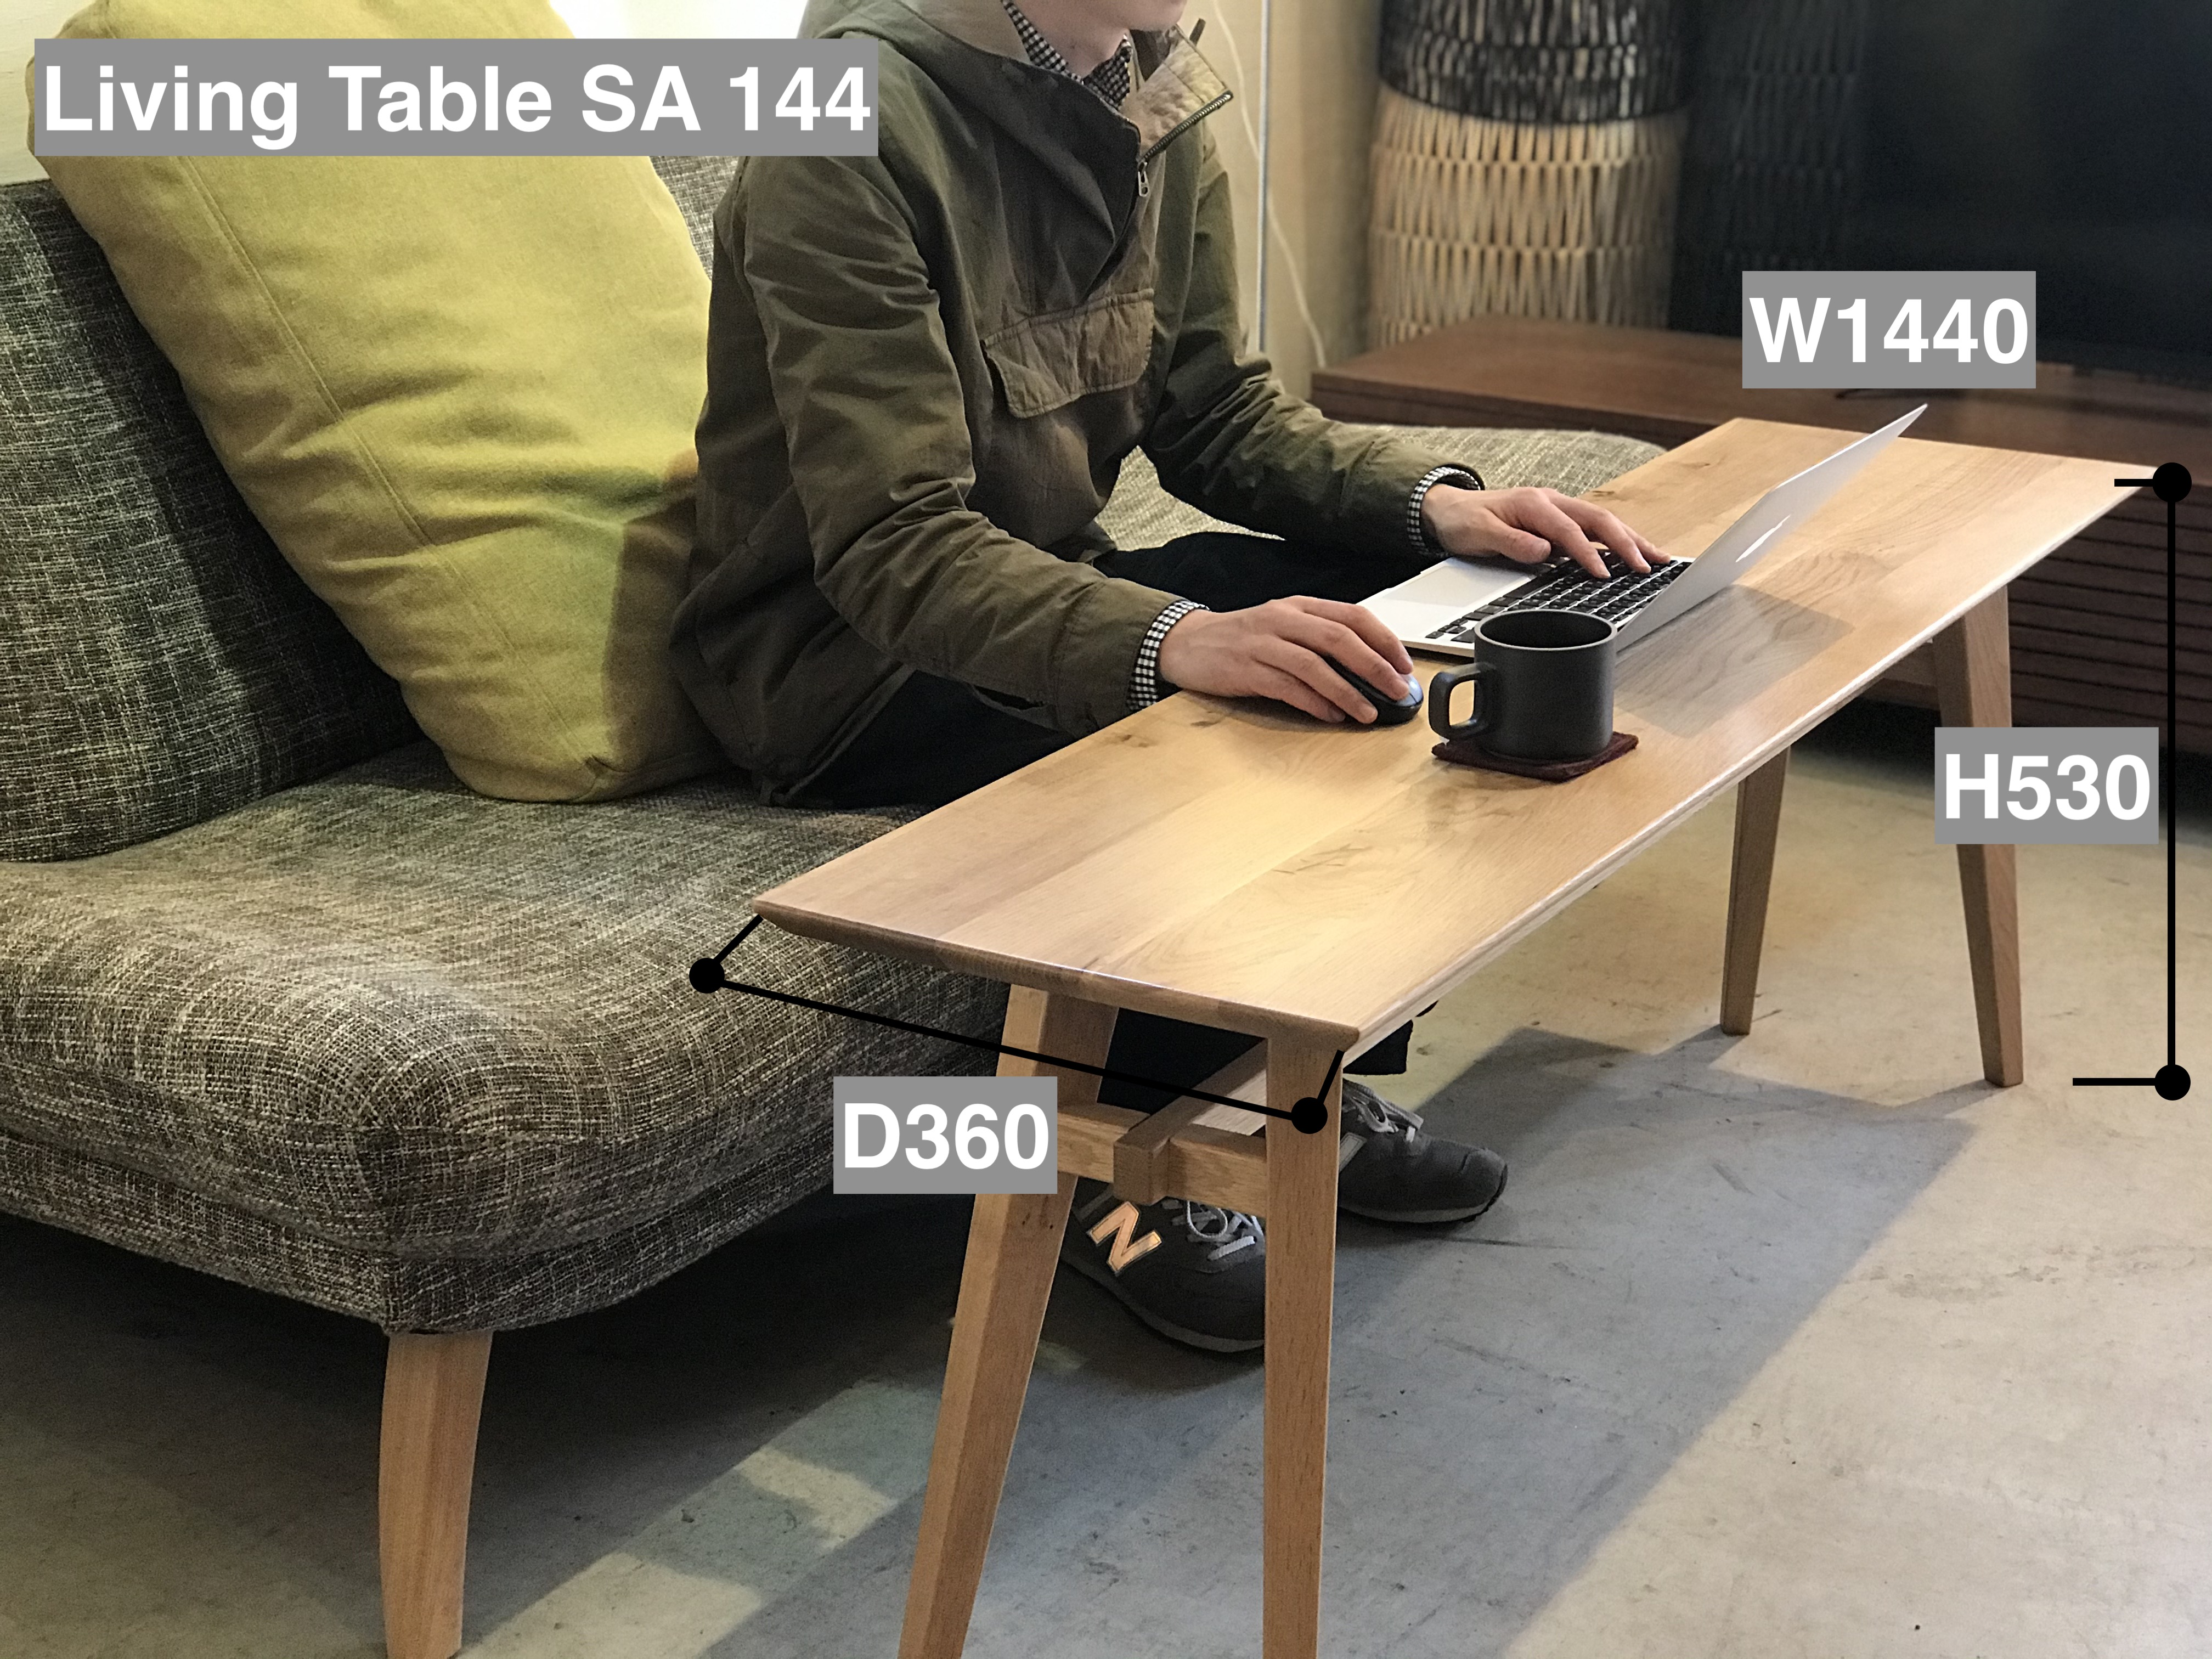 Living Table SA 144